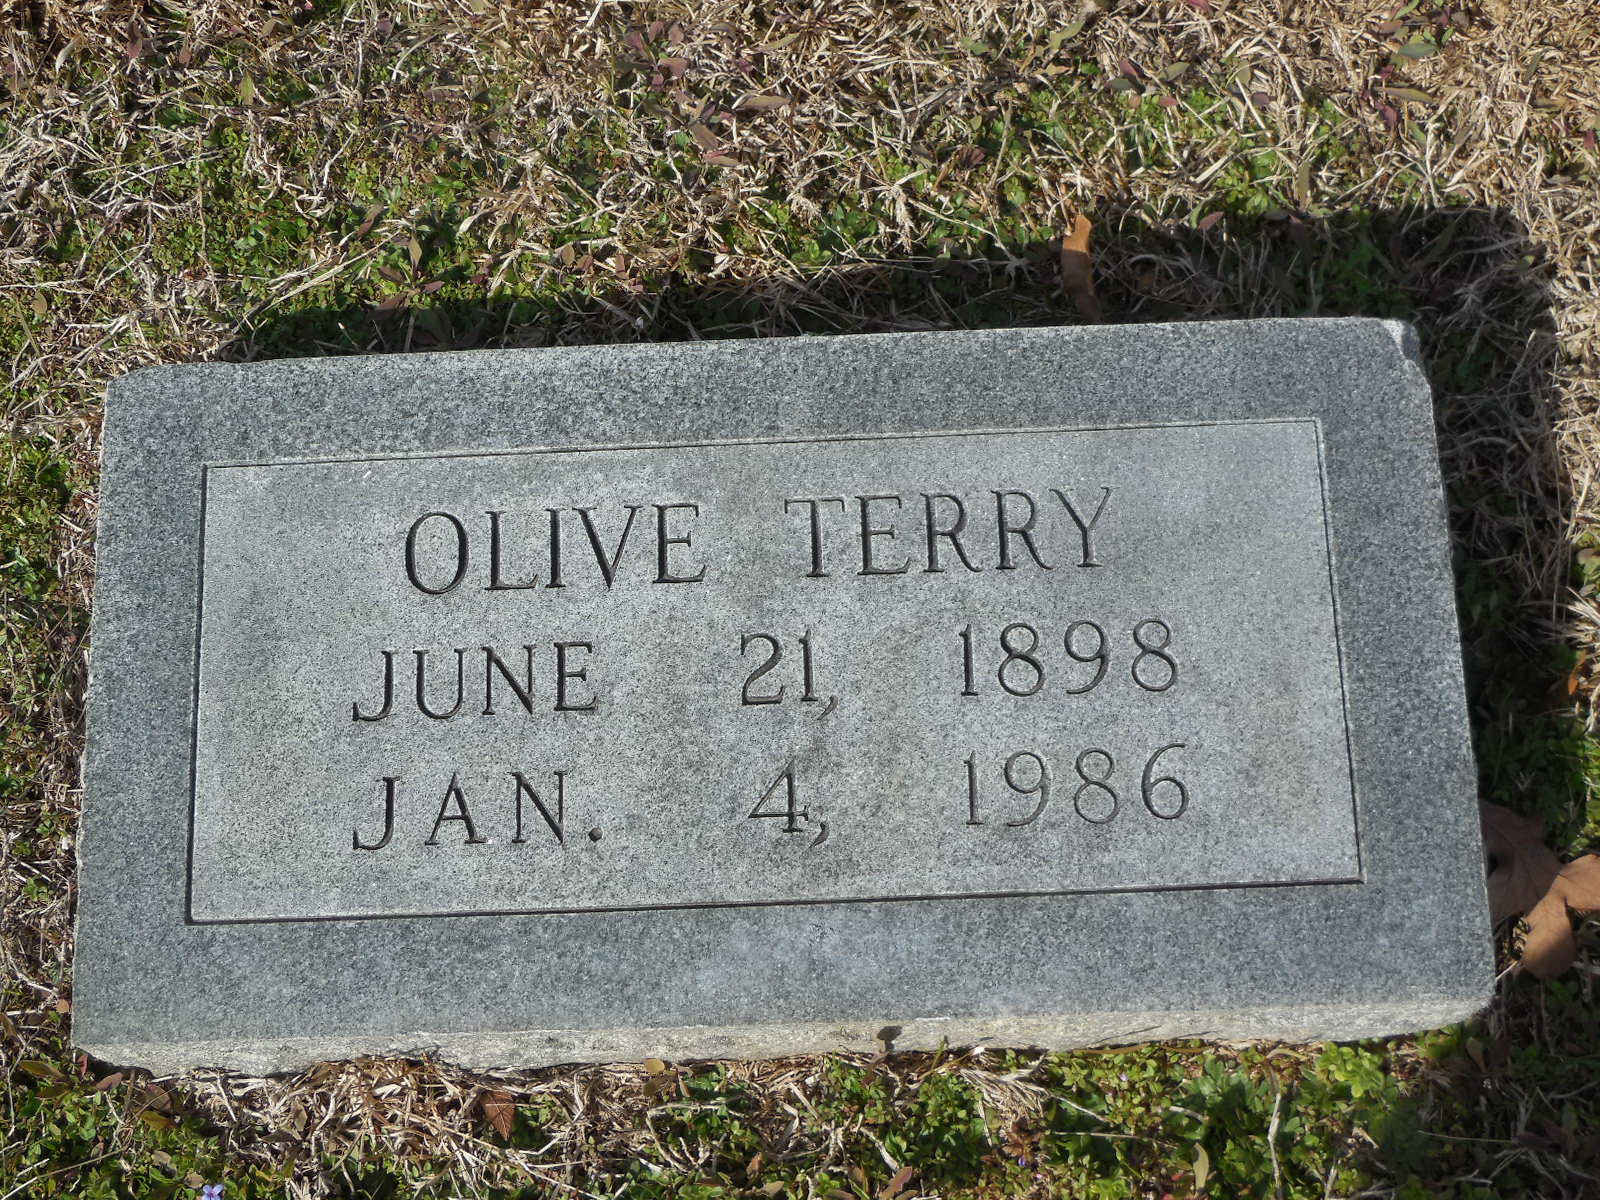 Olive Terry